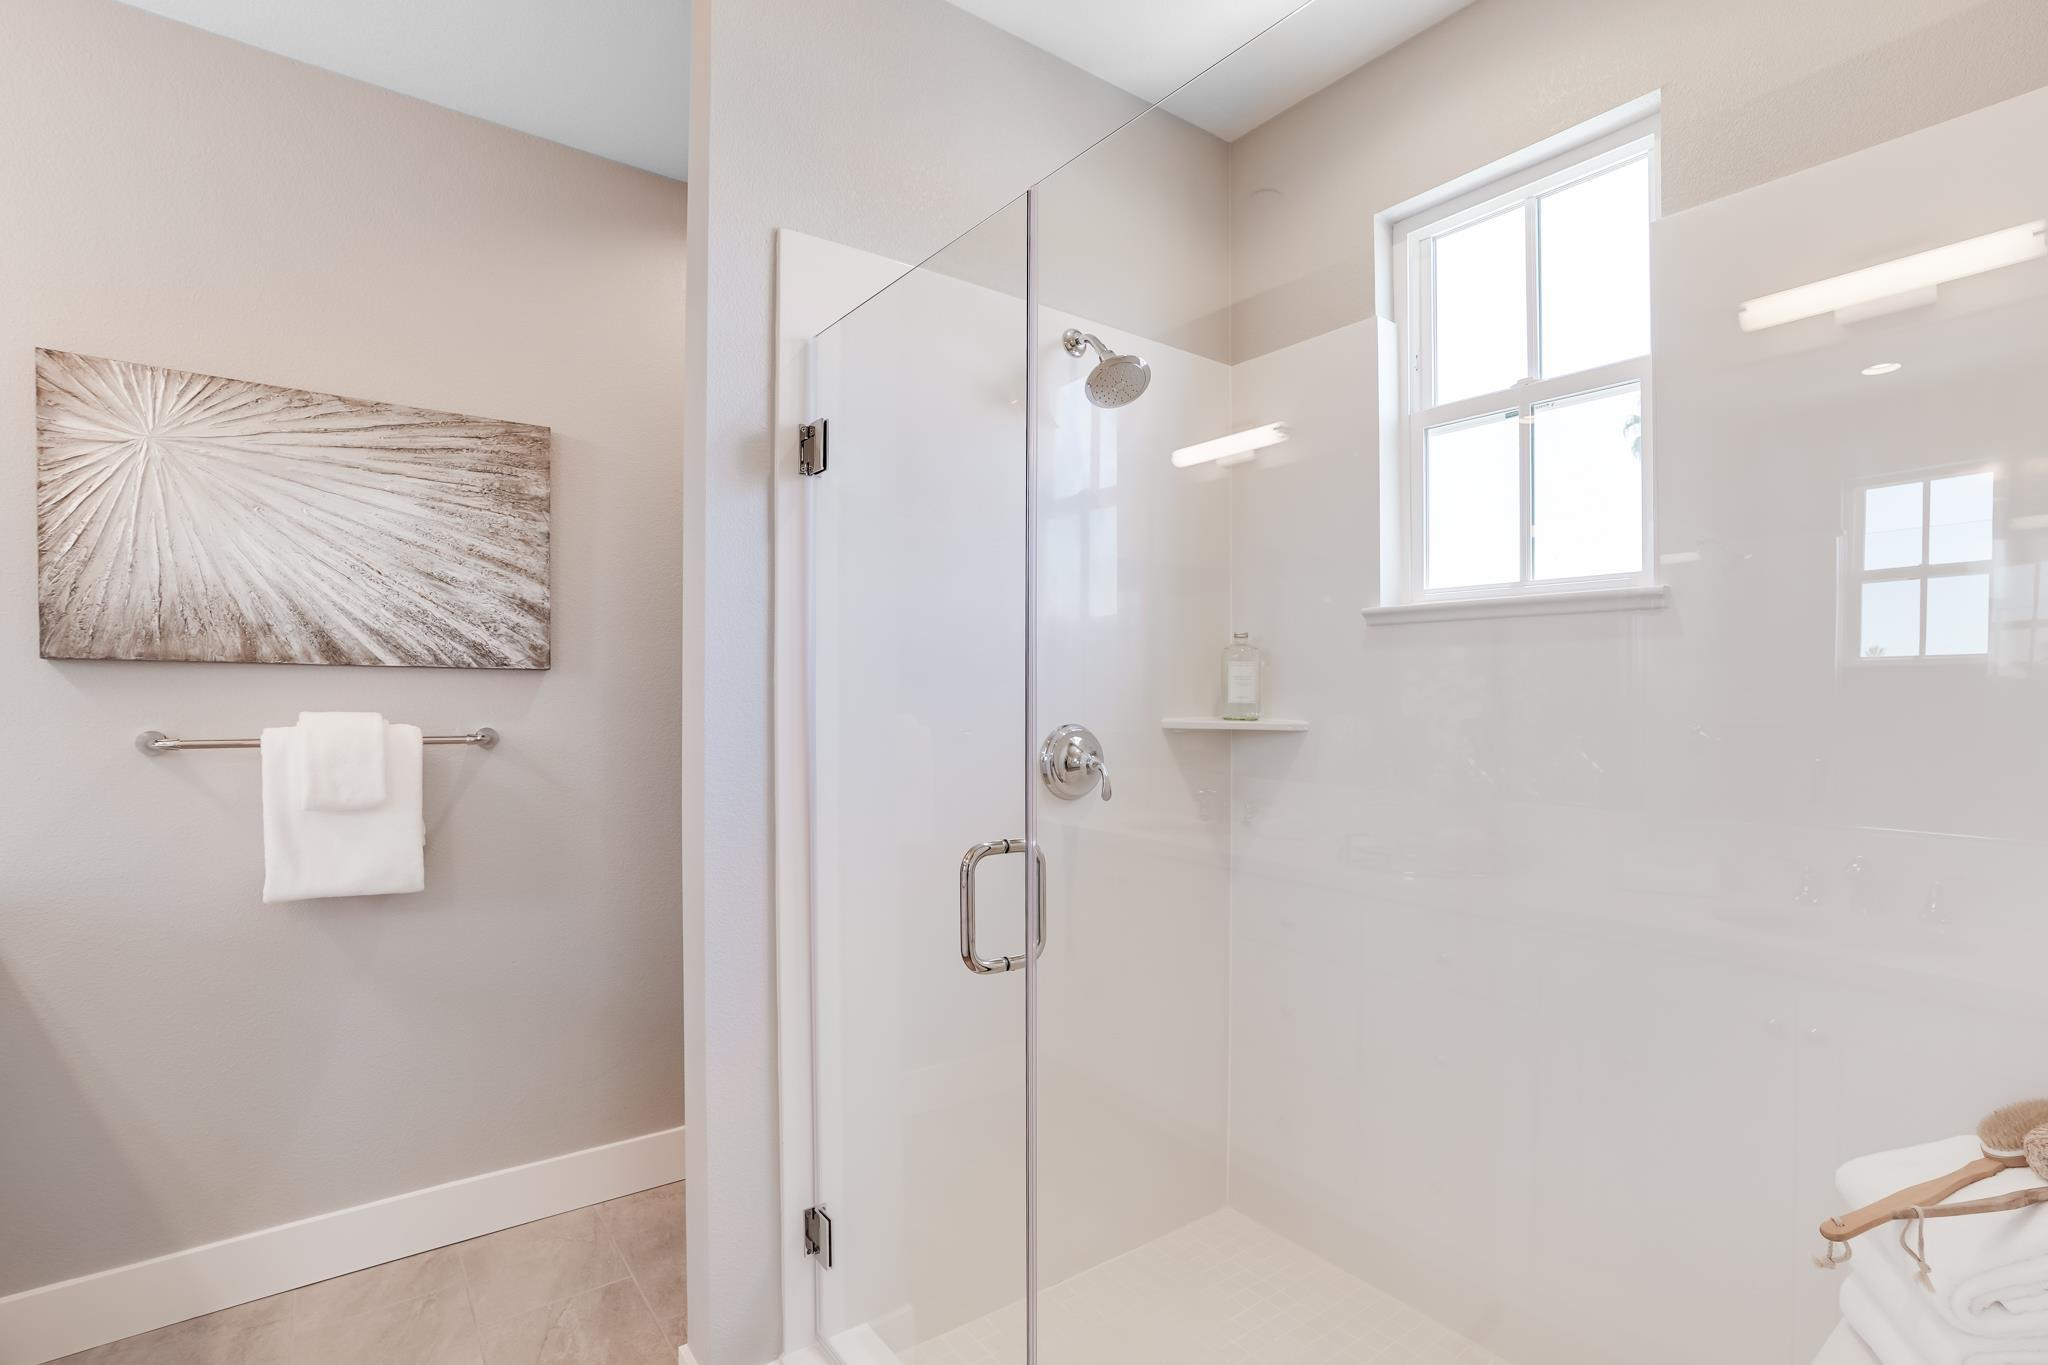 Bathroom featured in the Plan 4 By Classic Communities in San Jose, CA